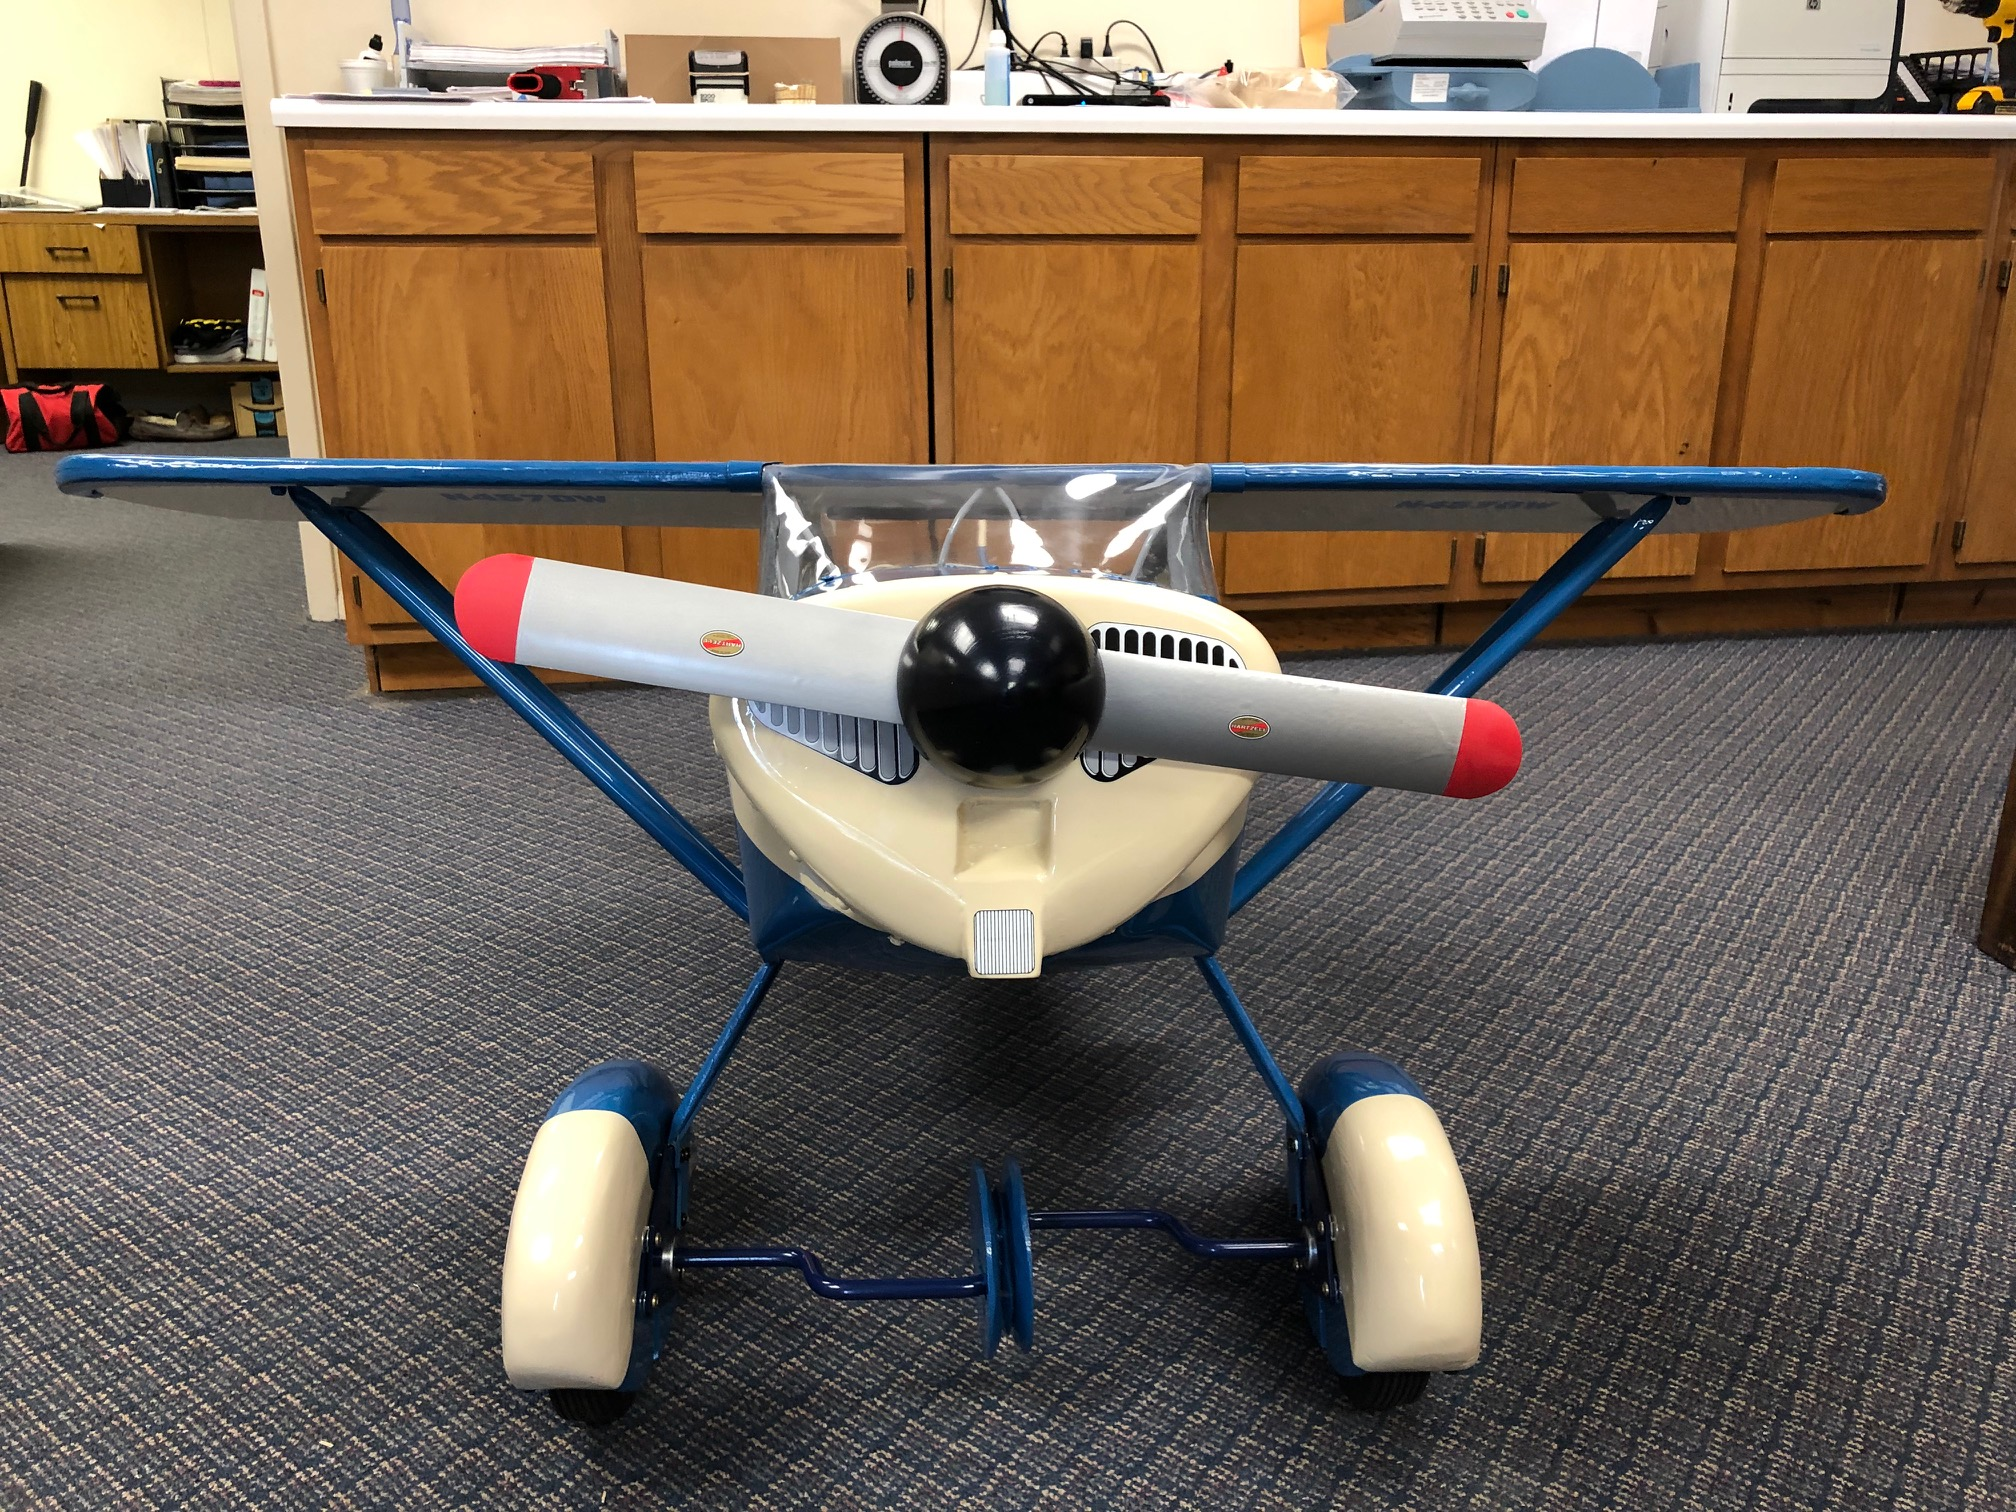 Forward facing view of Pedal plane toy on the ground